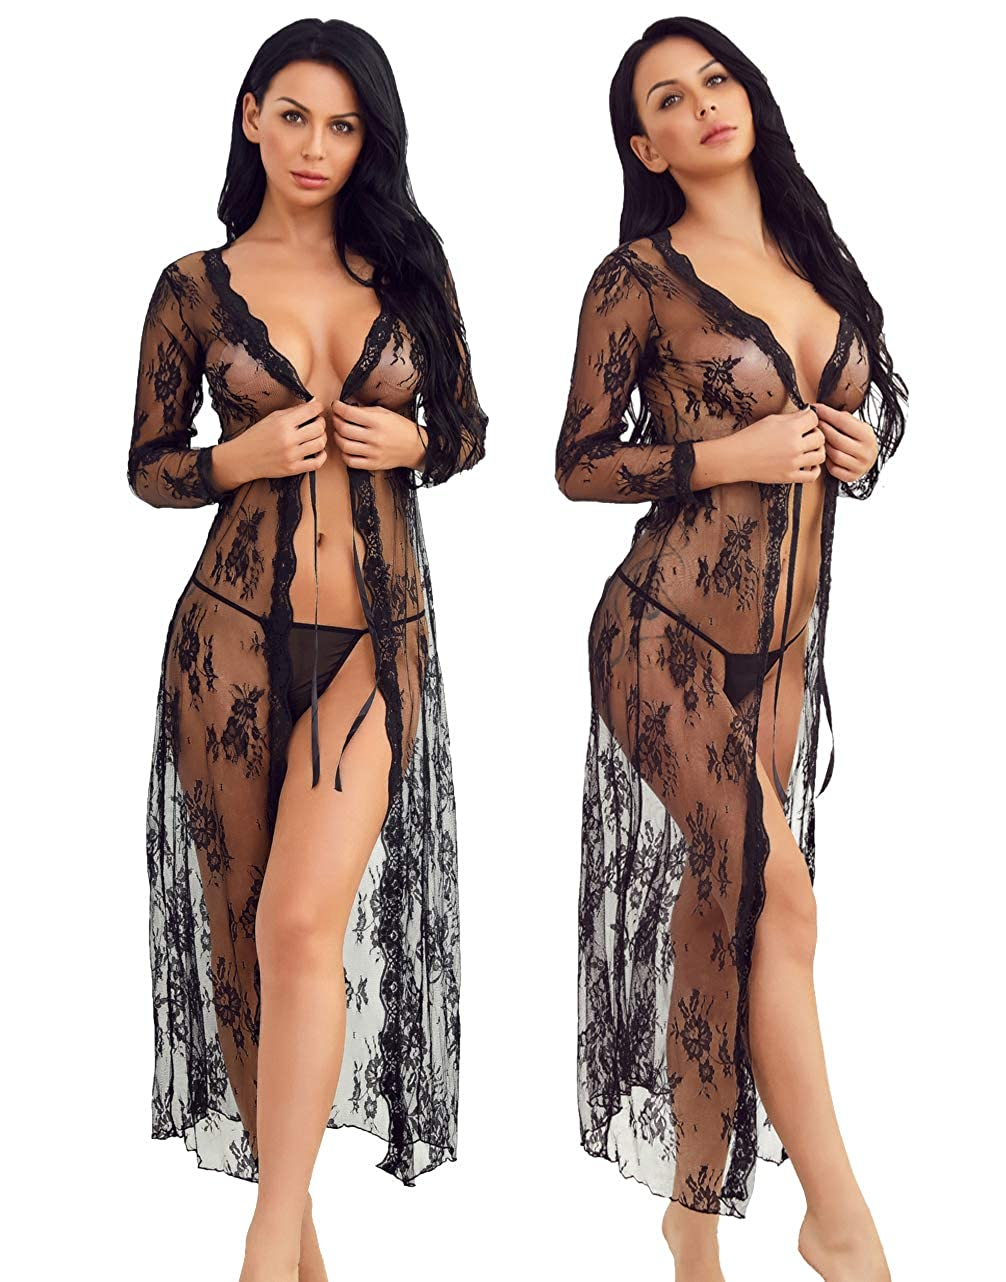 ea5b493627 Lingerie for Women Lace Kimono Robe Long Gown Mesh Chemise at Amazon  Women's Clothing store: